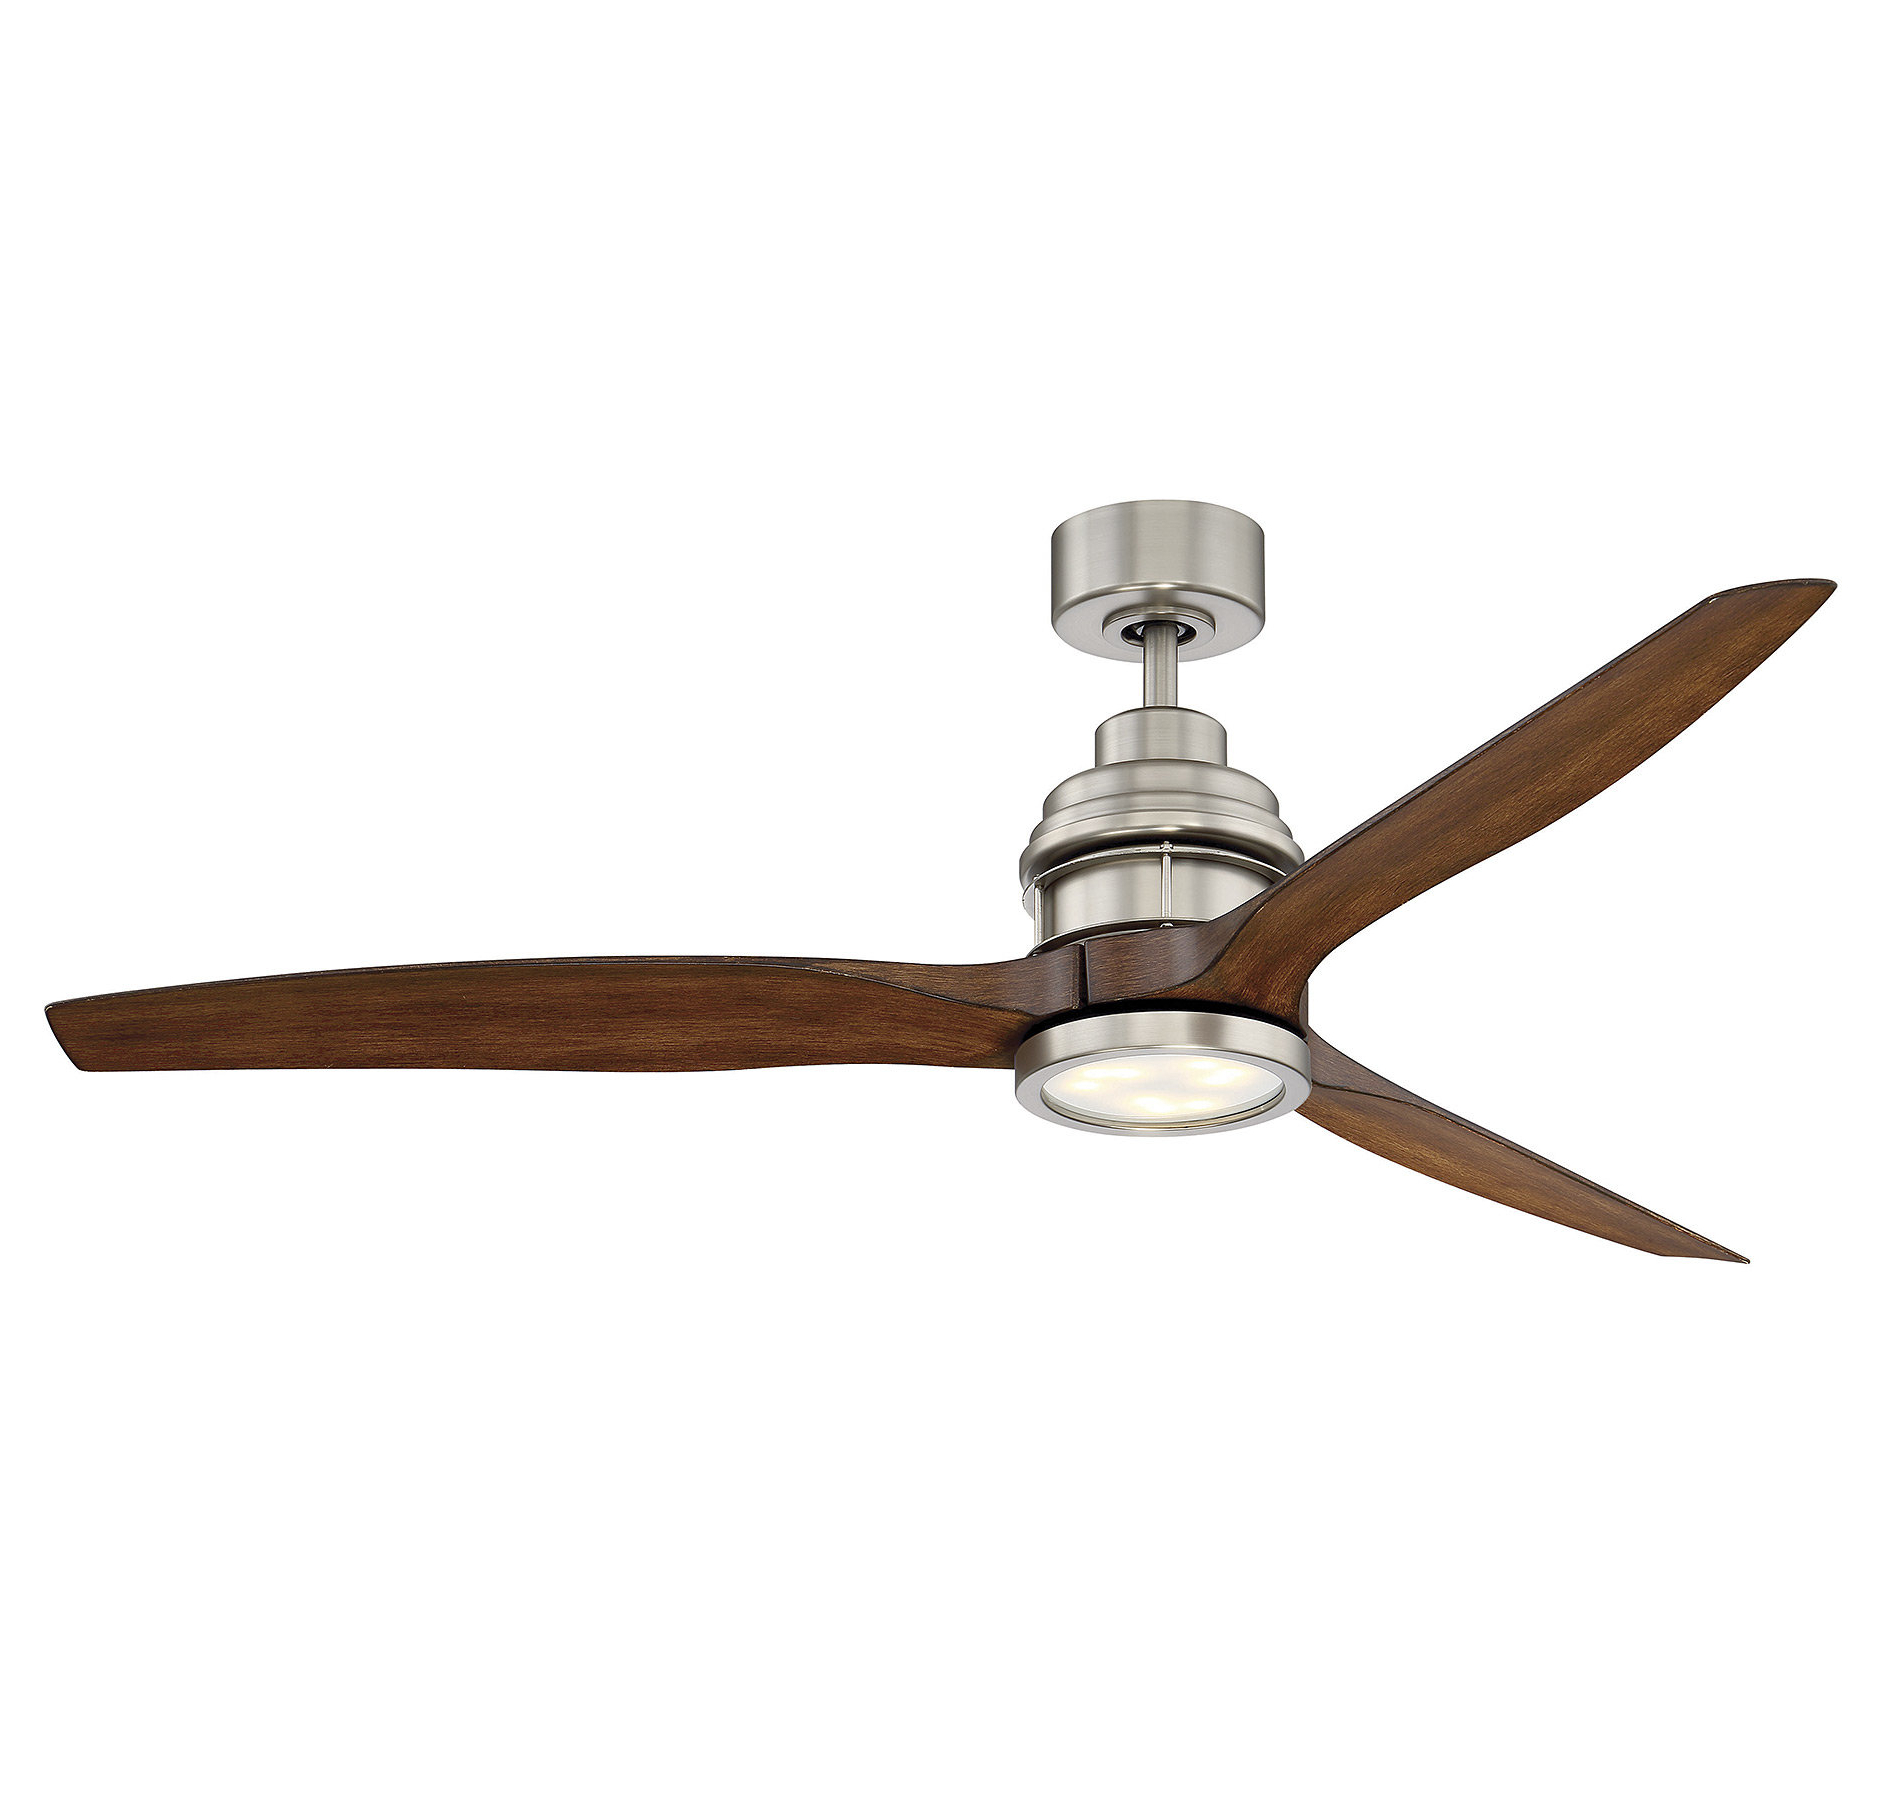 "Most Recently Released Dennis 3 Blade Ceiling Fans Intended For 60"" Harmoneyq 3 Blade Ceiling Fan With Remote (View 16 of 20)"